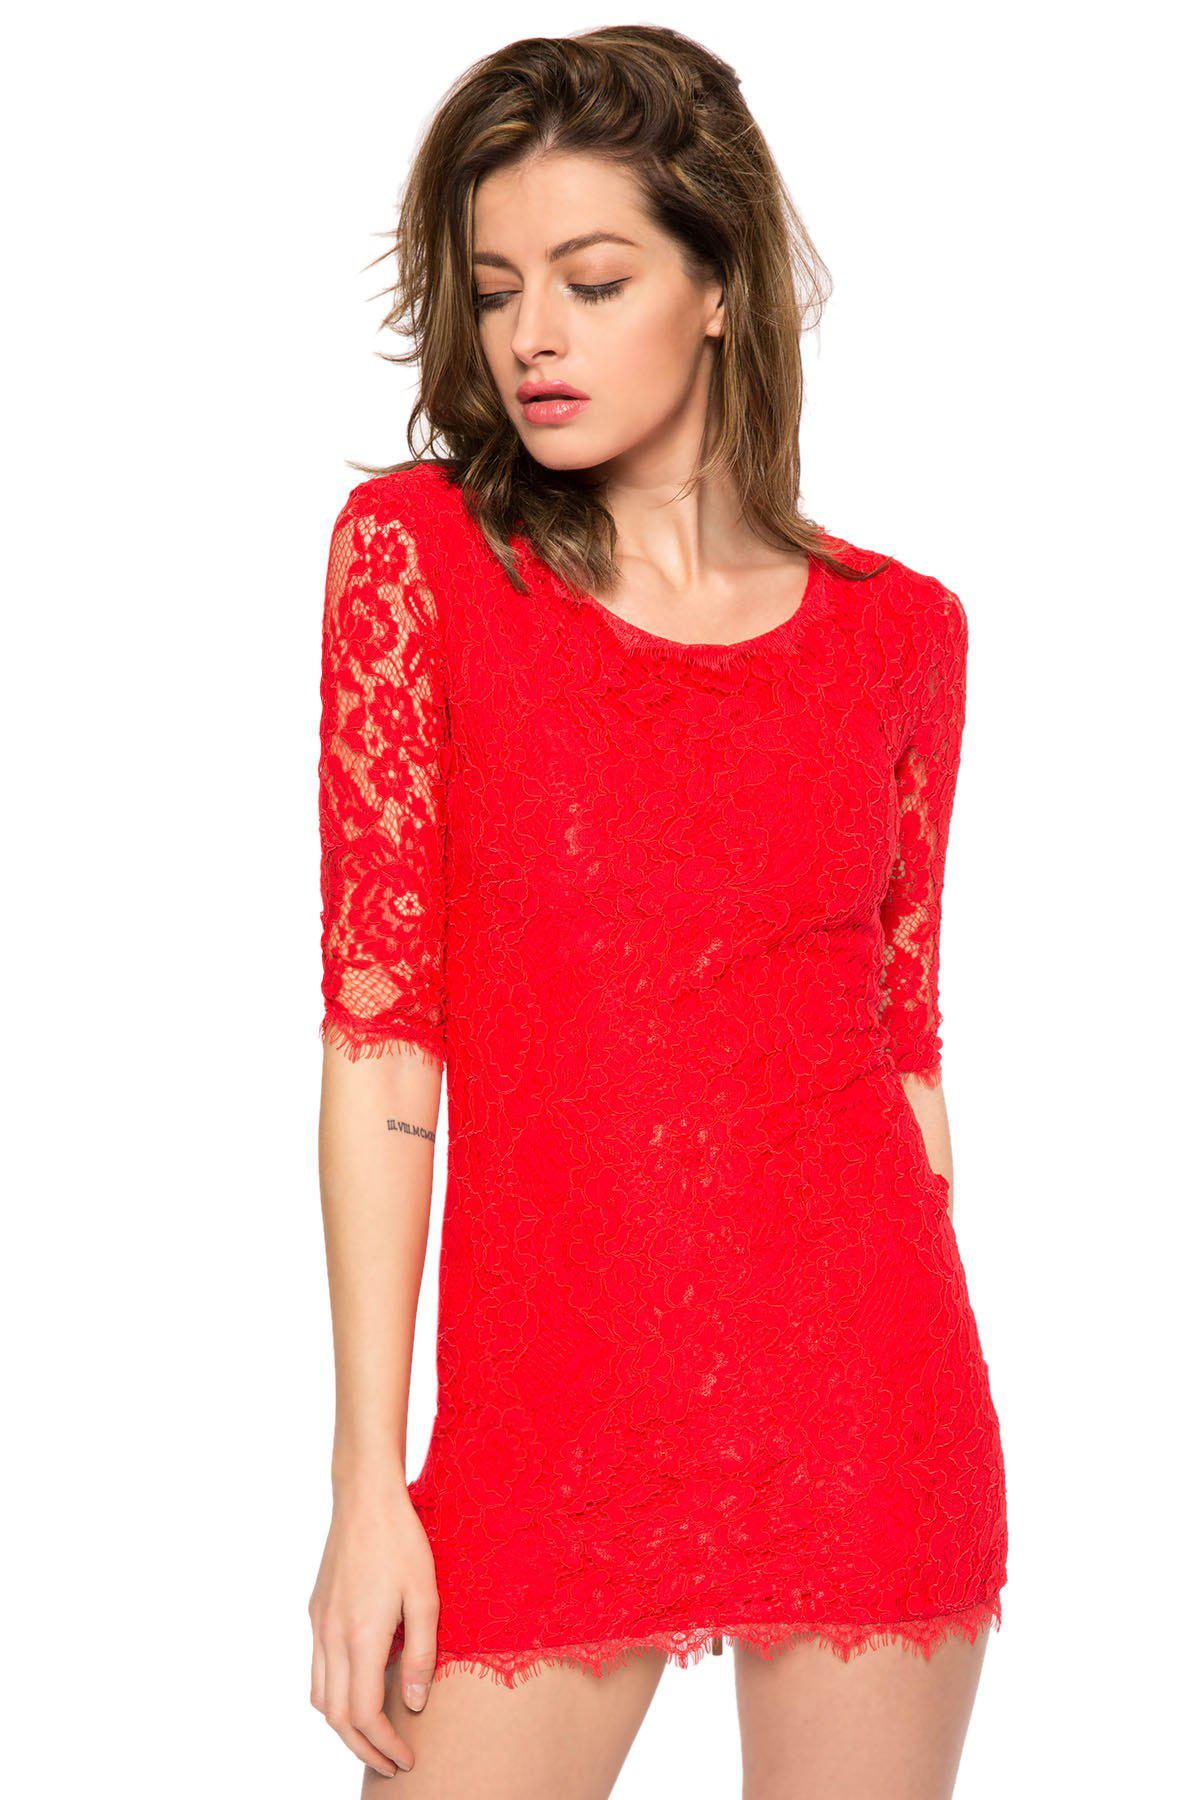 Trendy Style Scoop Collar 3/4 Sleeve Solid Color Slimming Women's Lace Dress - RED XL